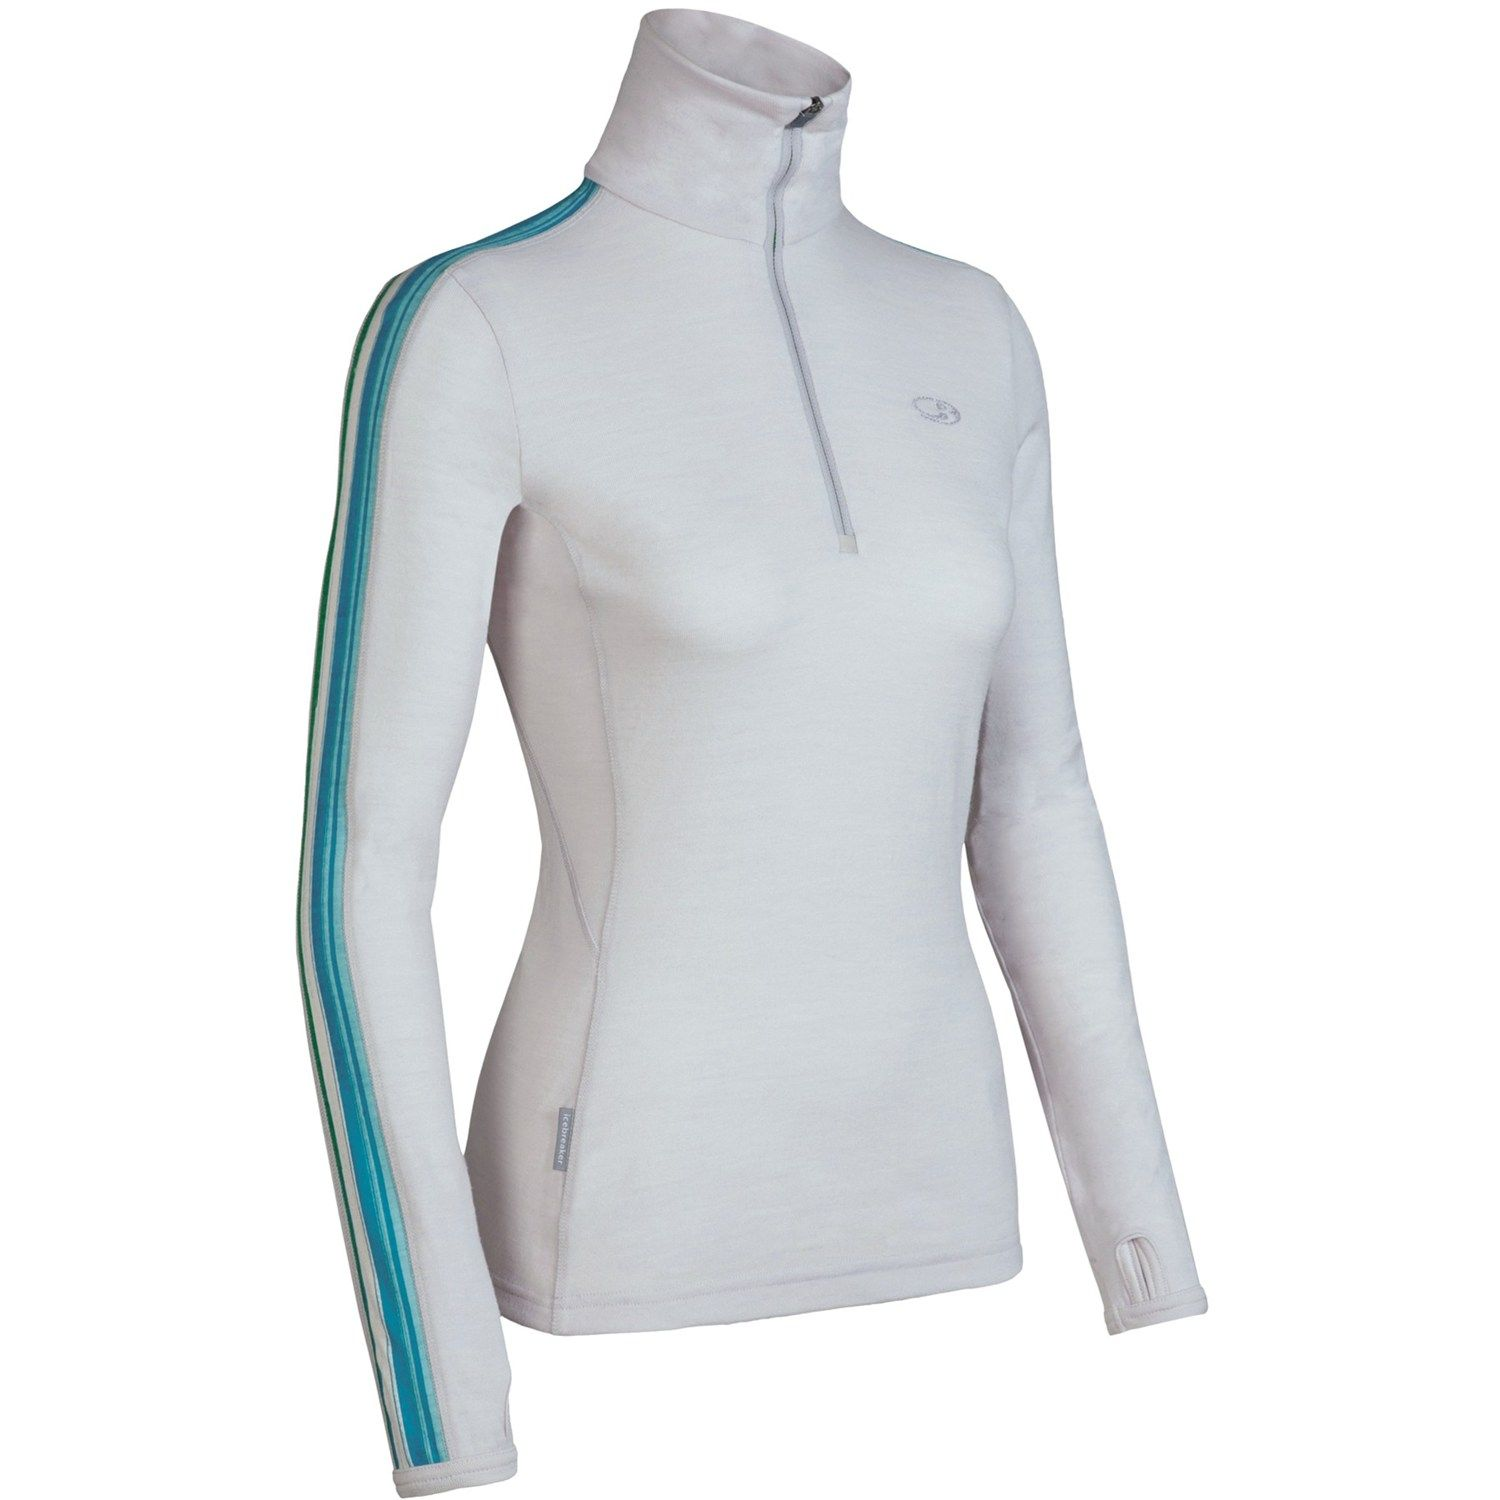 Icebreaker Bodyfit 260 Vertex Base Layer Top Merino Wool